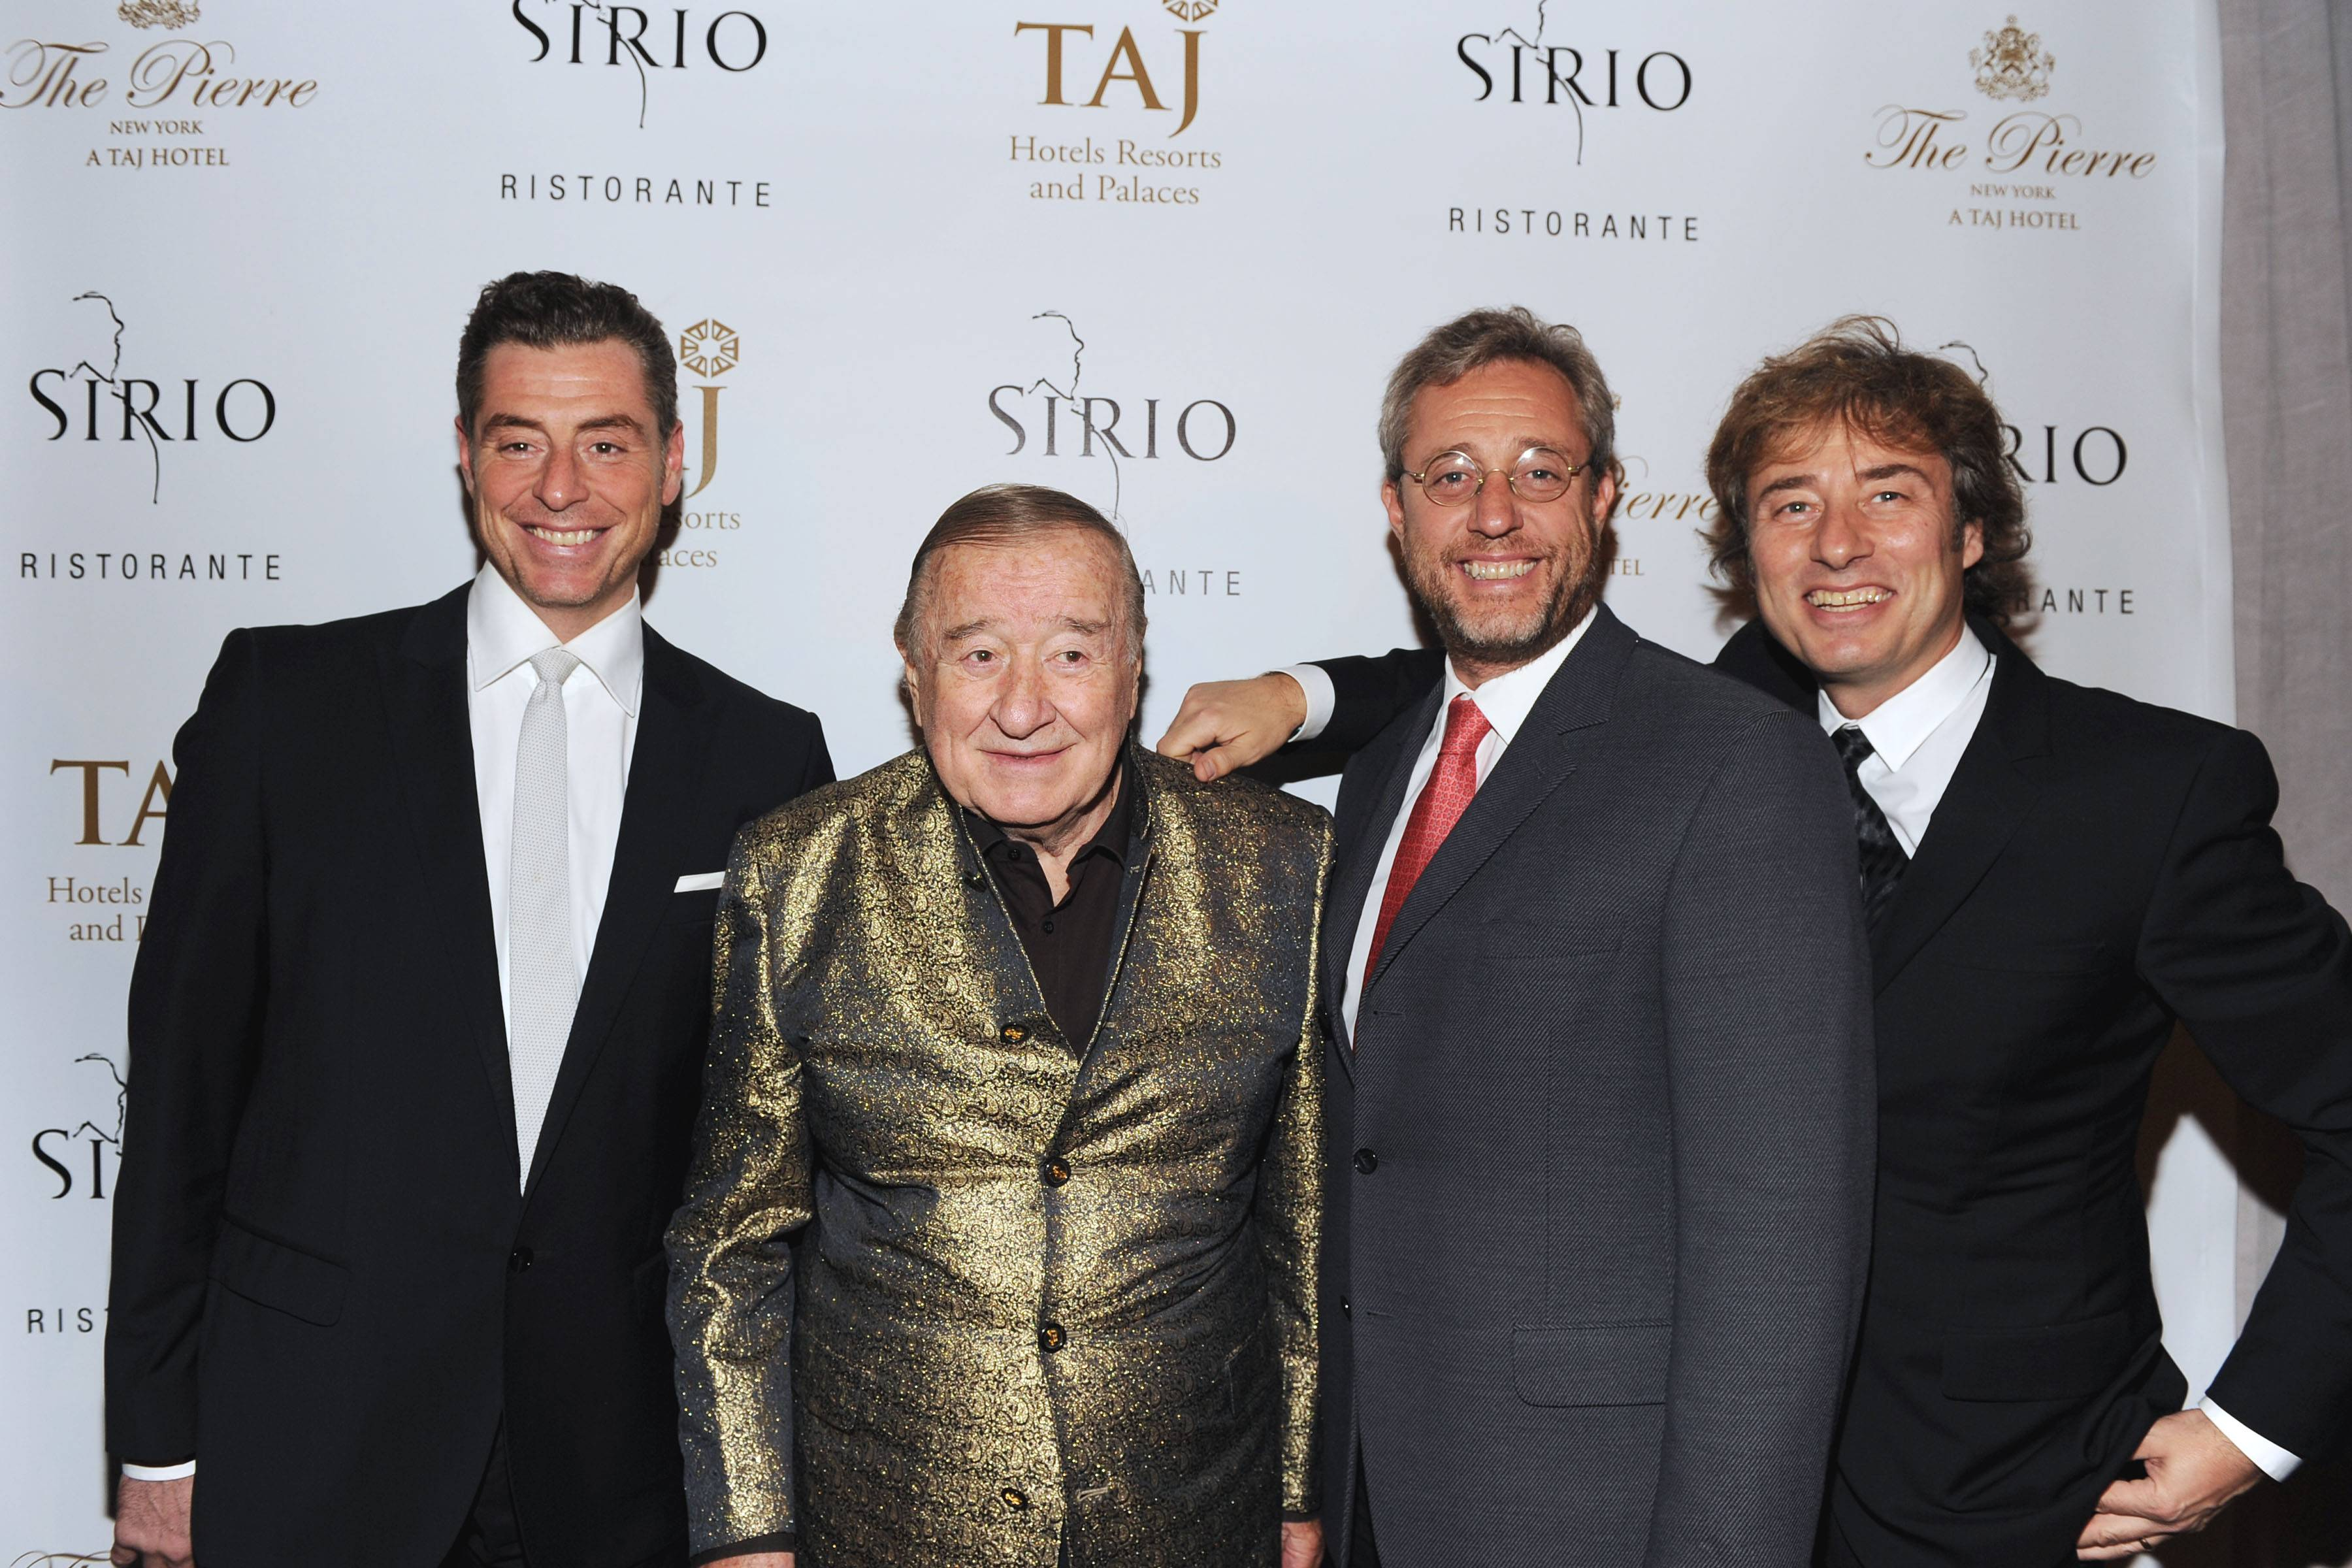 Grand Opening of SIRIO RISTORANTE At The Iconic PIERRE, A TAJ Hotel